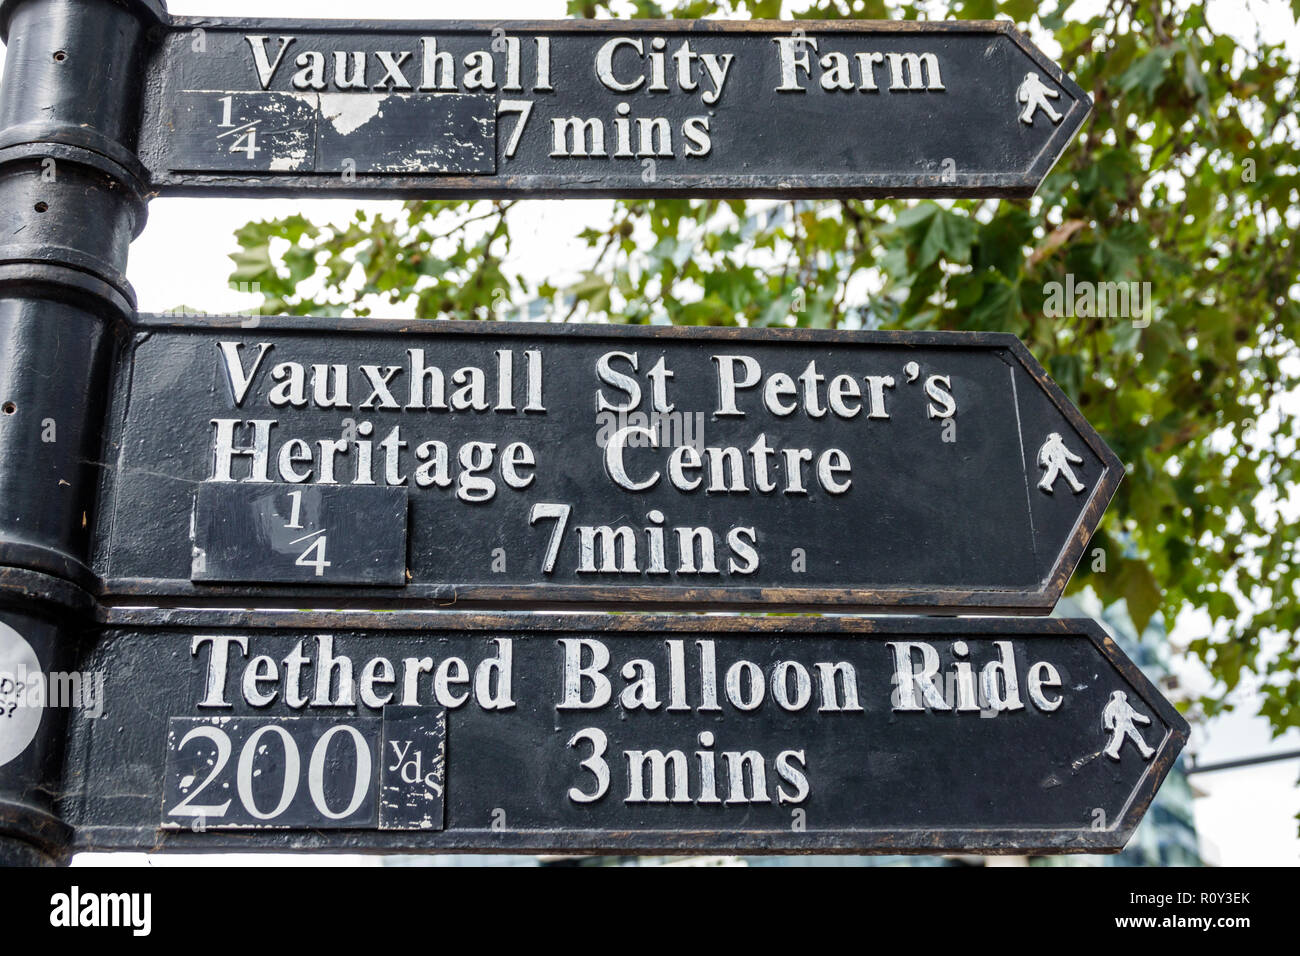 Londres Angleterre Royaume-Uni Grande-bretagne Vauxhall Lambeth post directionnel flèche de emplacement à distance de marche Vauxhall City Farm la Heri Photo Stock